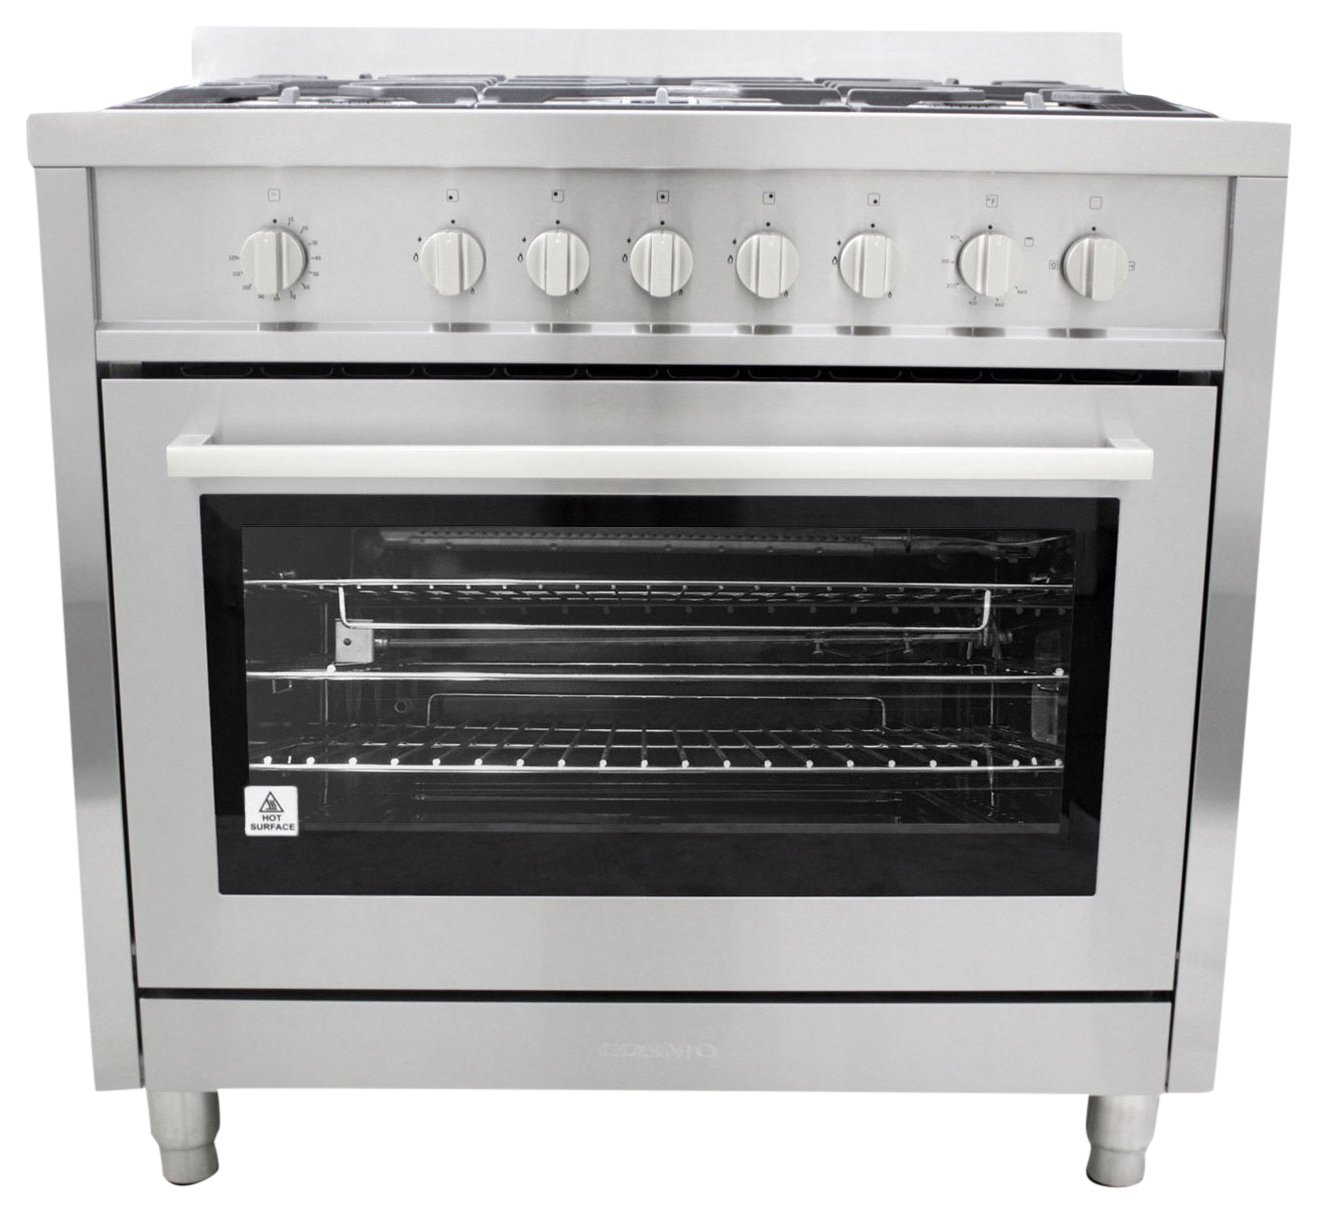 36 in. Gas Range with 5 Italian Made Burners, Oven, Broiler, Motorized Rotisserie, with Legs Cosmo COS-965AGF by Cosmo